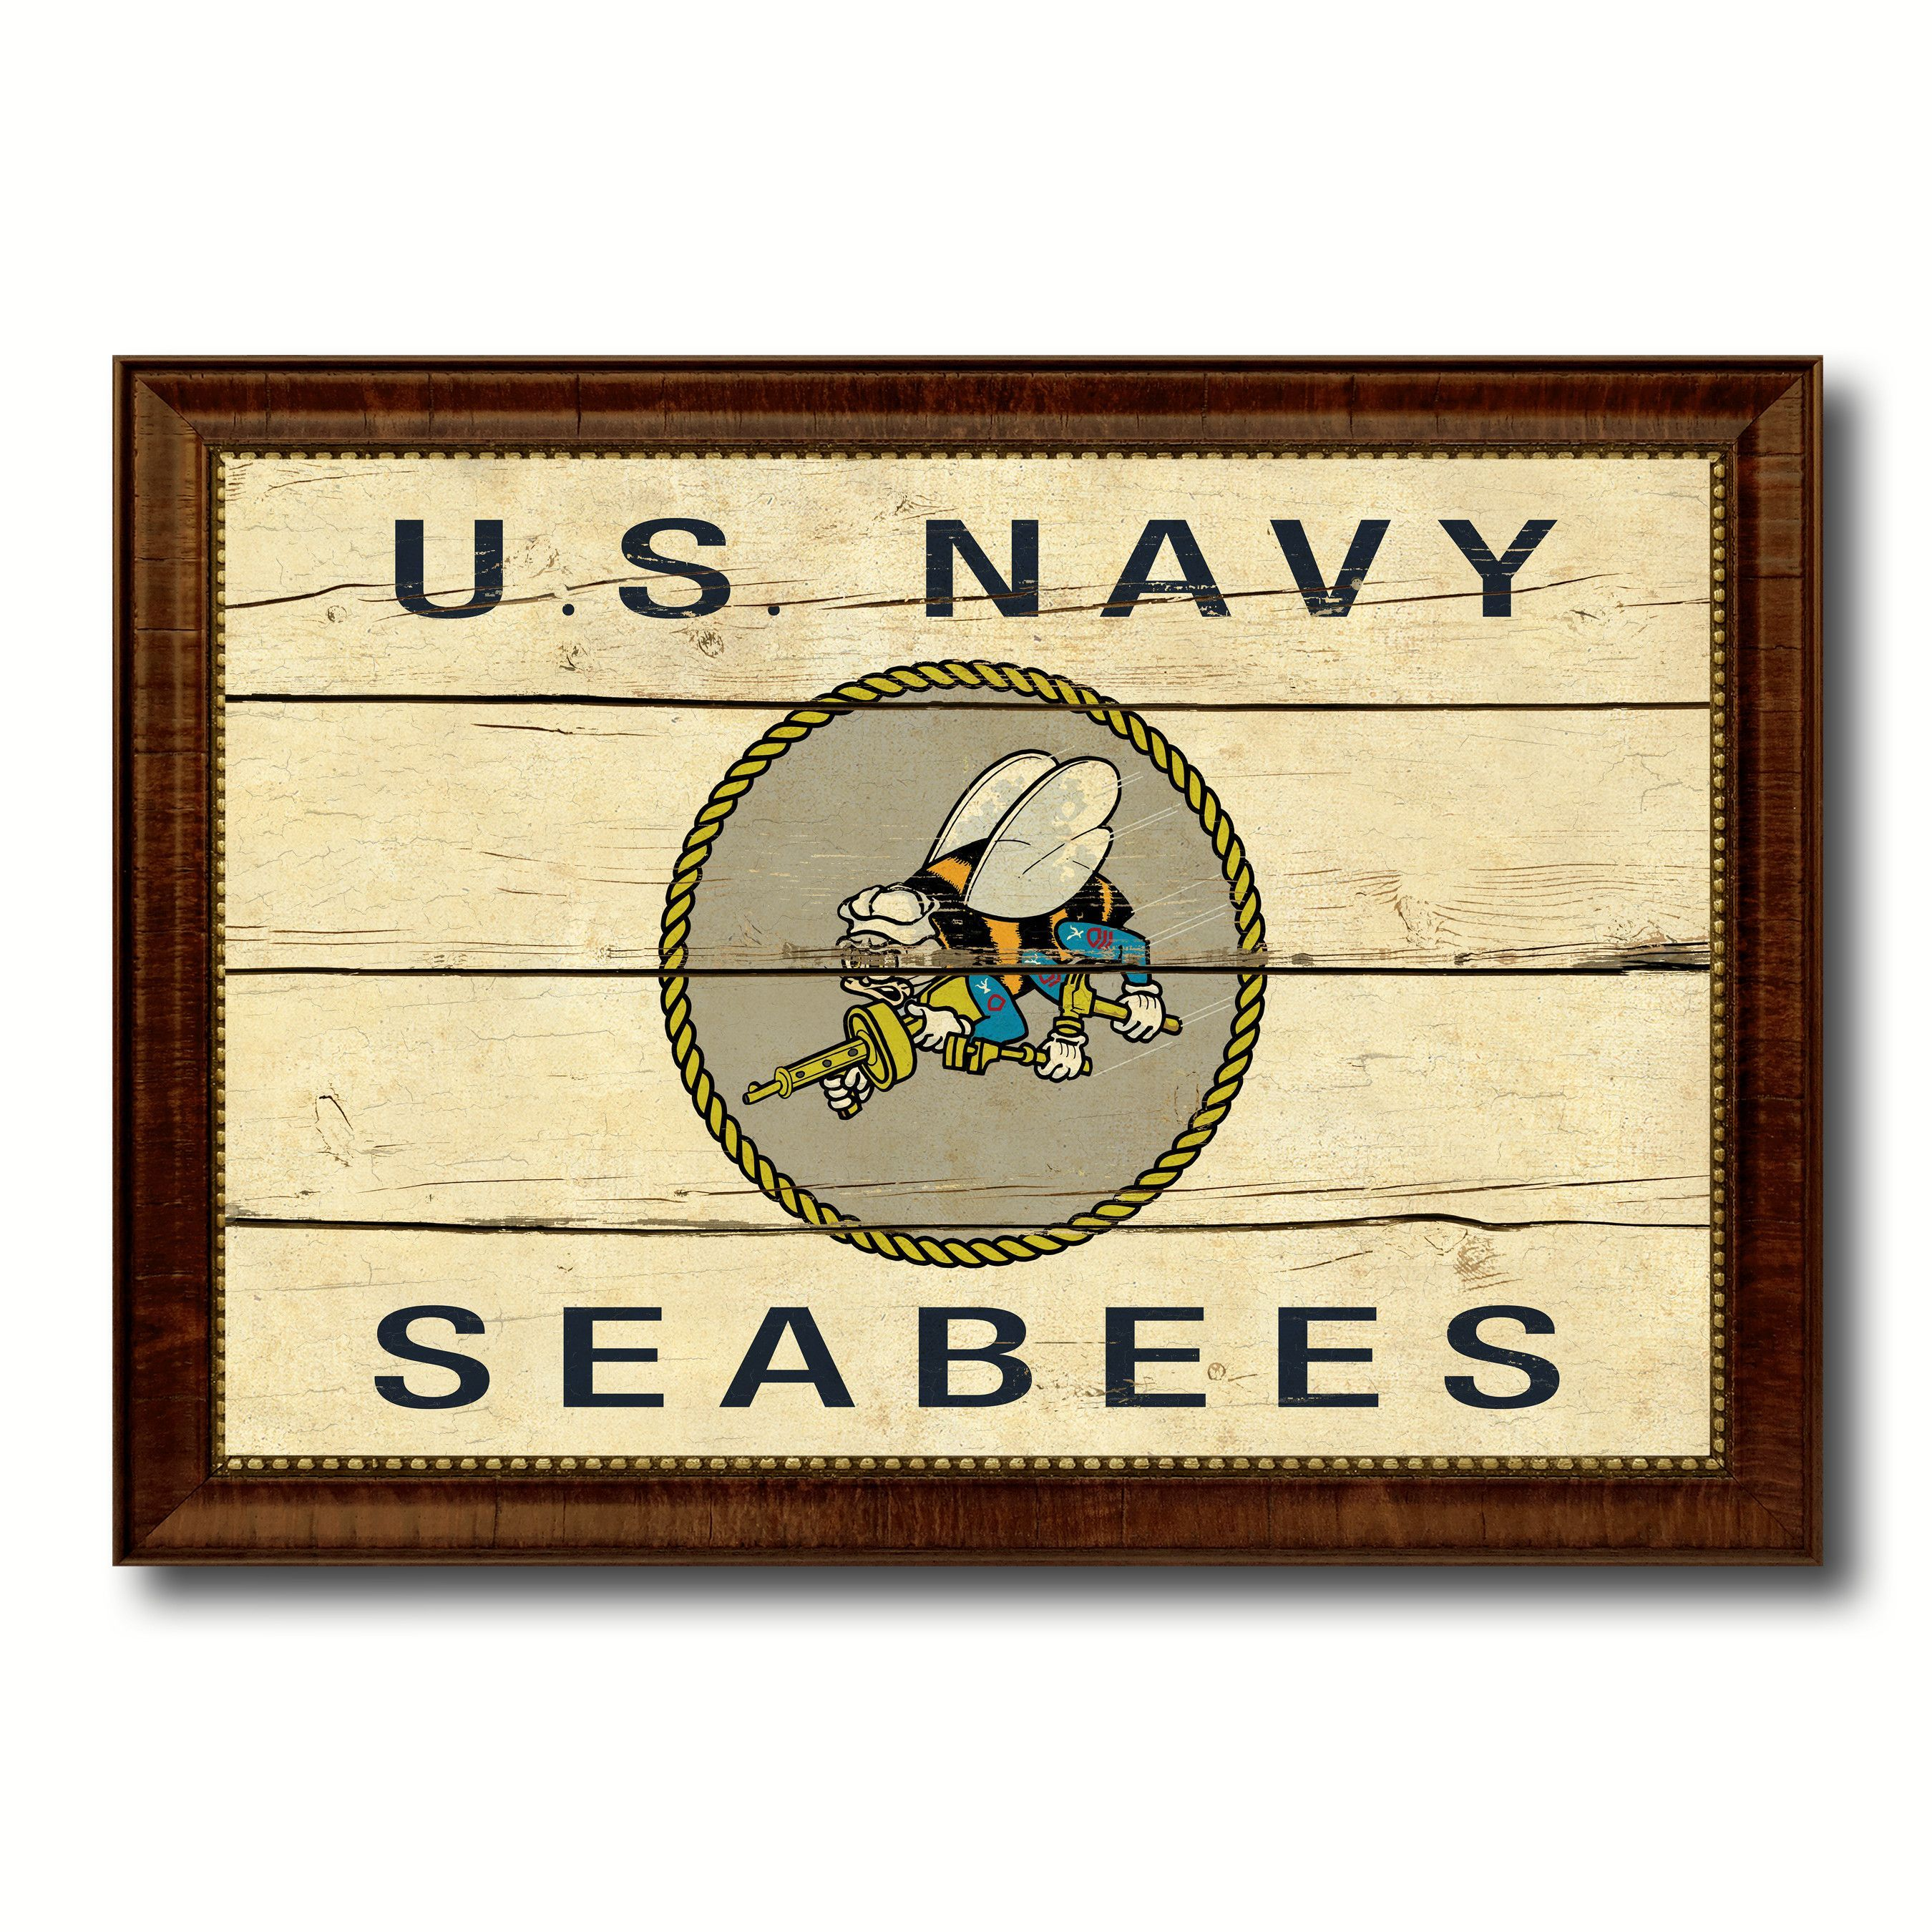 US Navy Seabees Military Flag Vintage Canvas Print with Brown ...